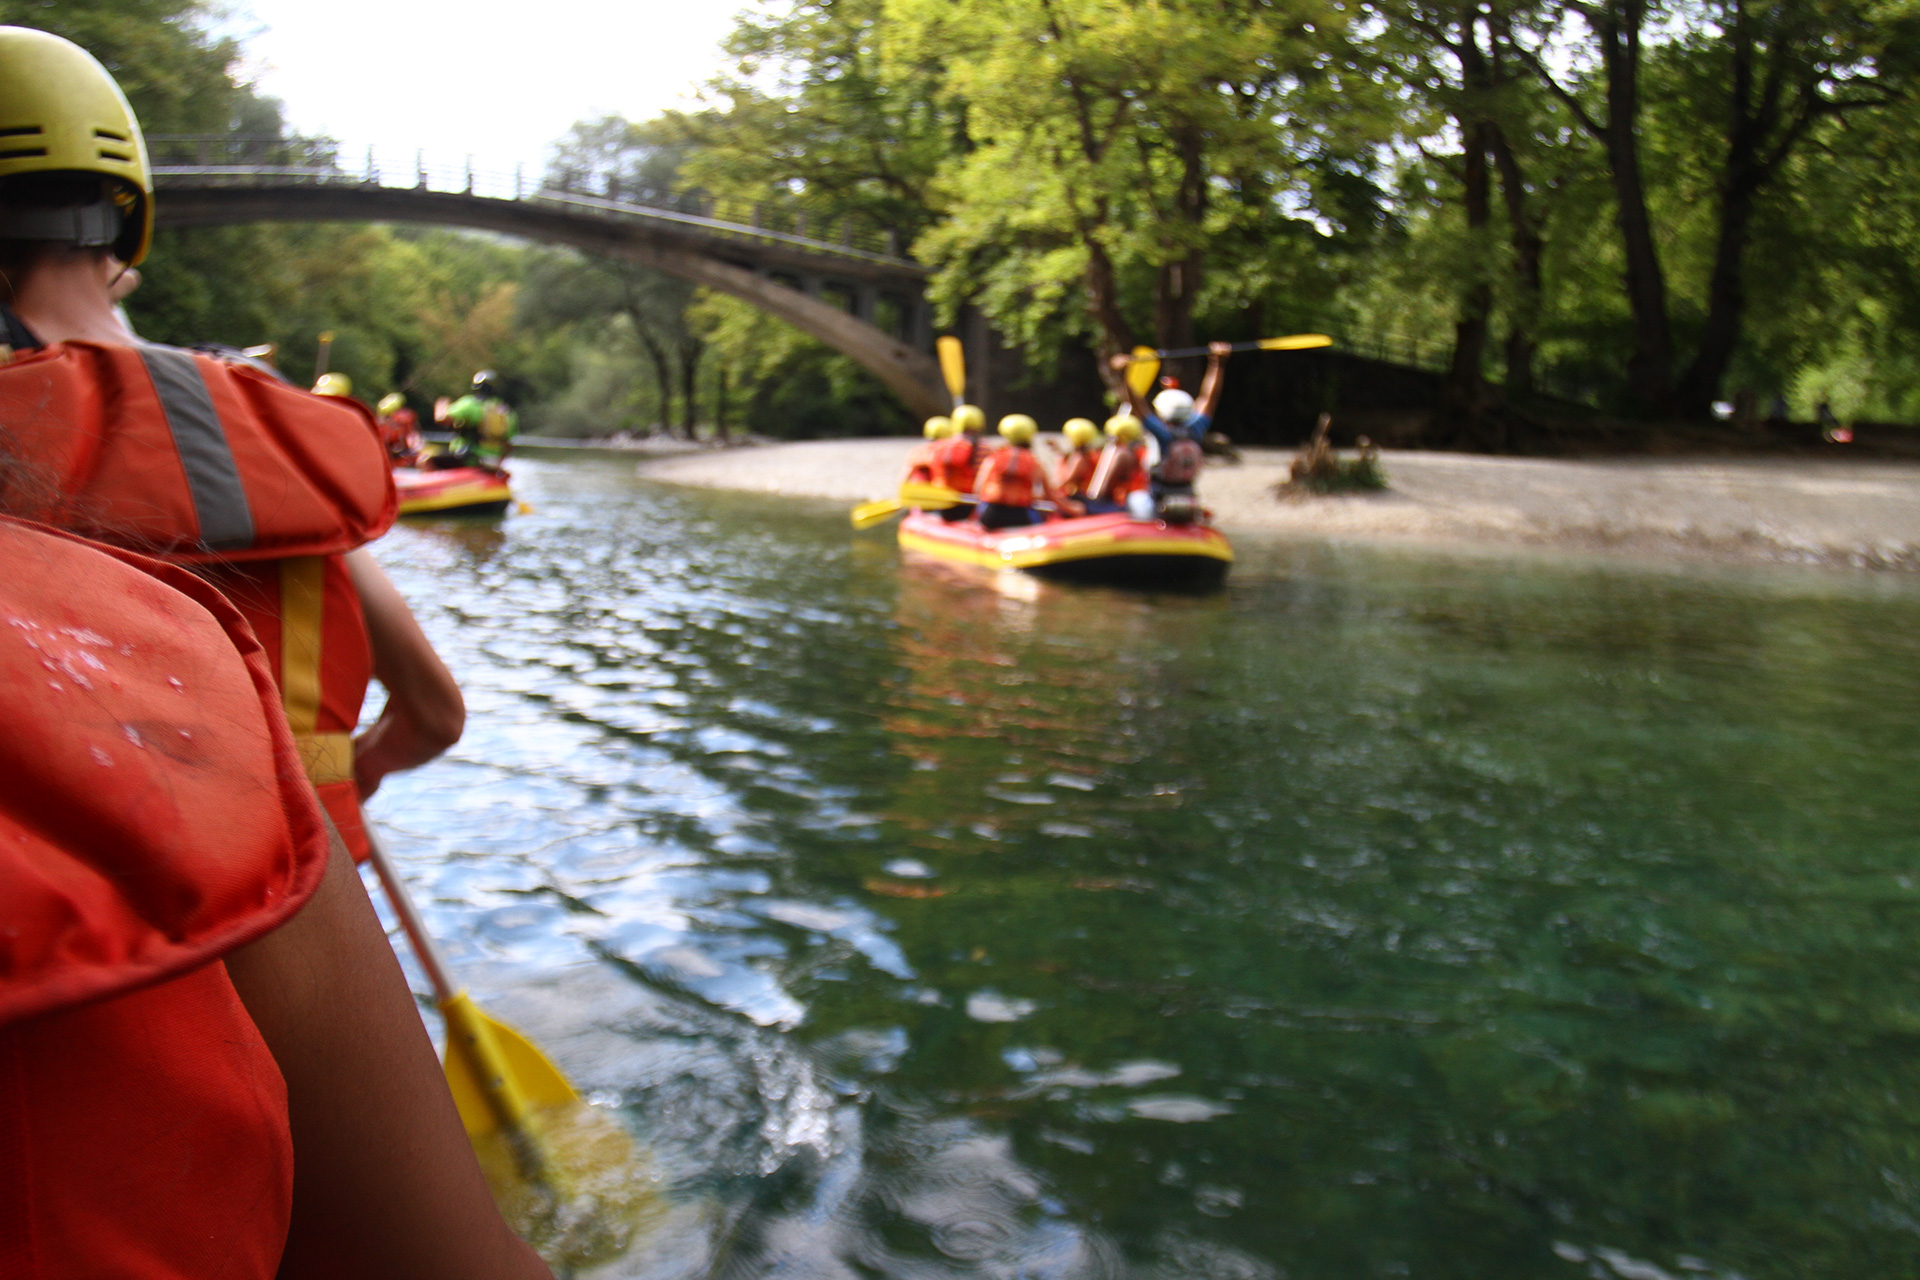 Rafting fast-flawing rivers